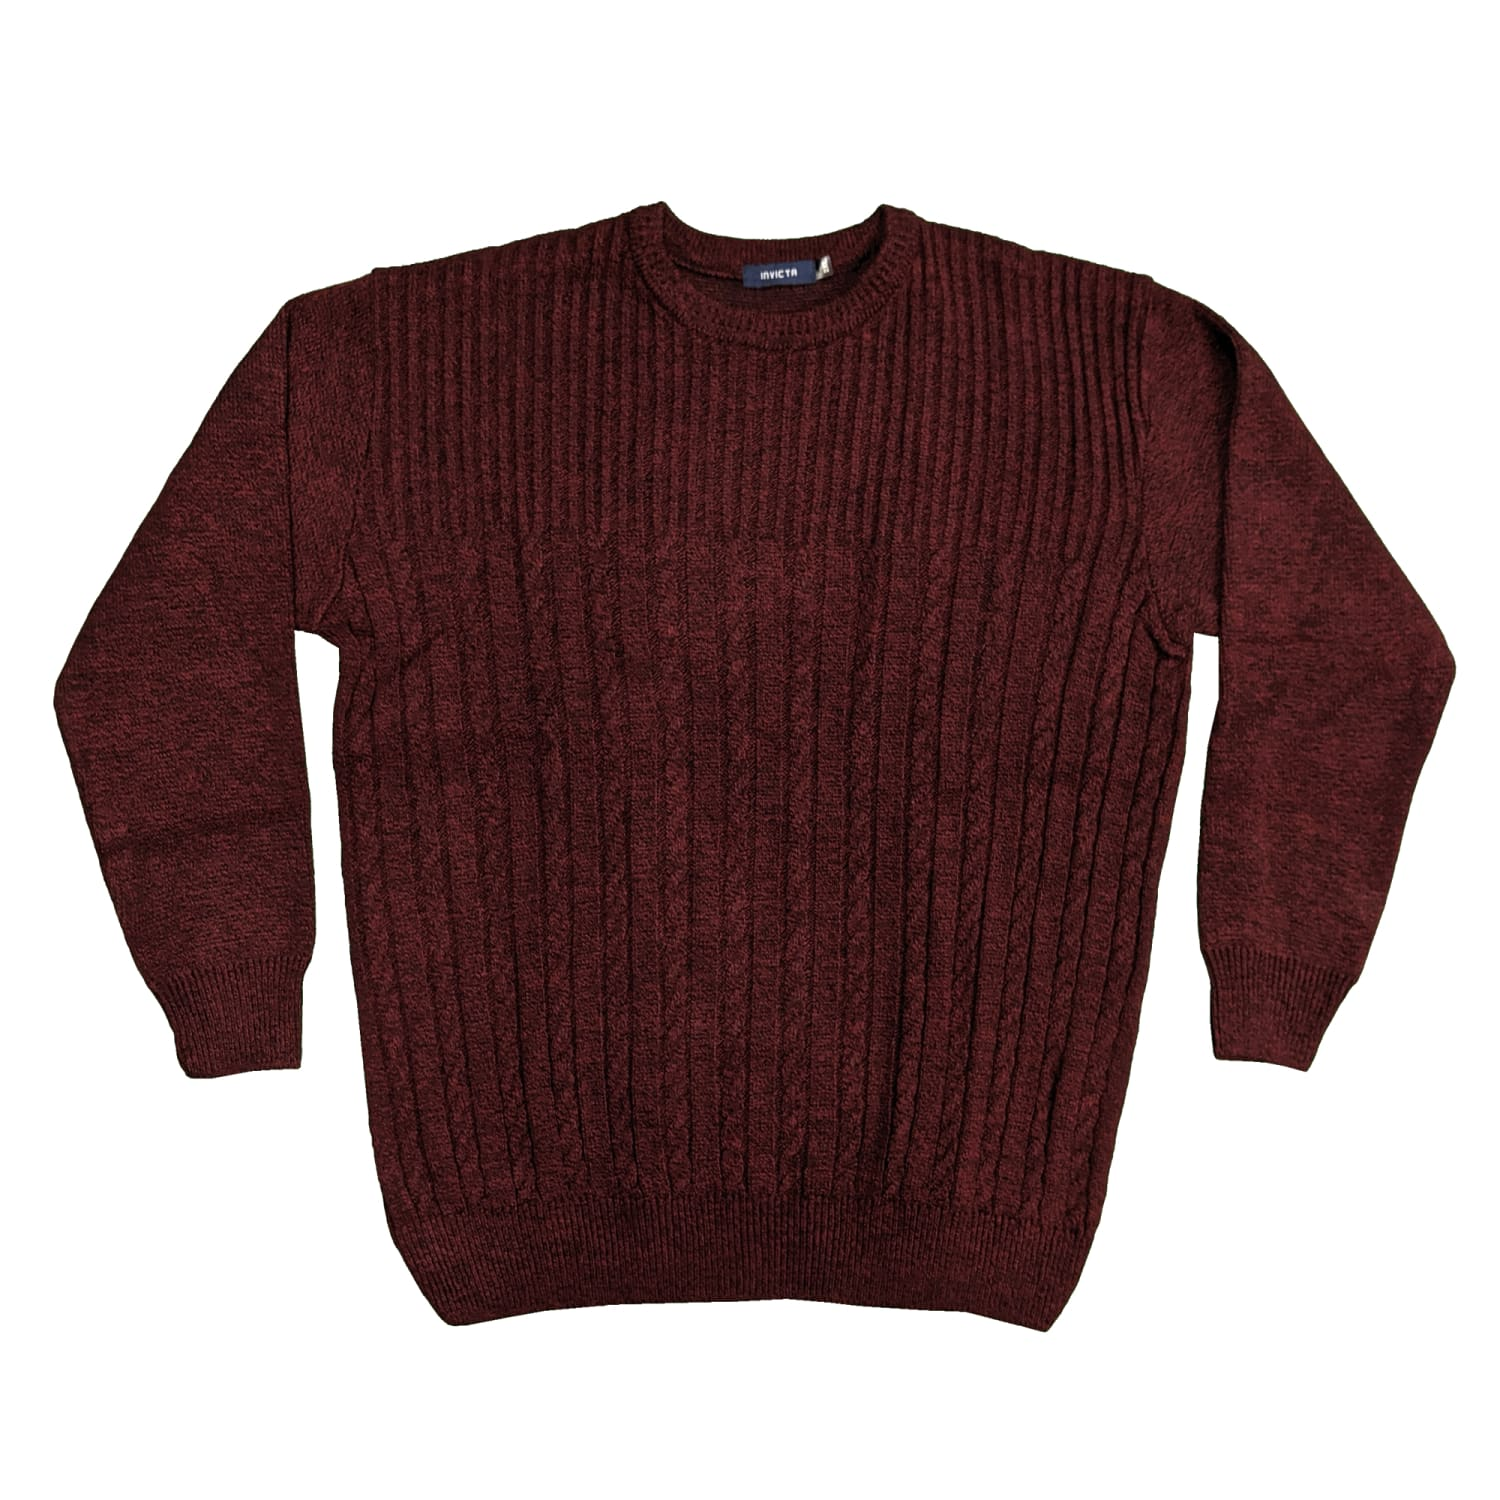 Invicta Cable Pullover - 02467 - Wine 1